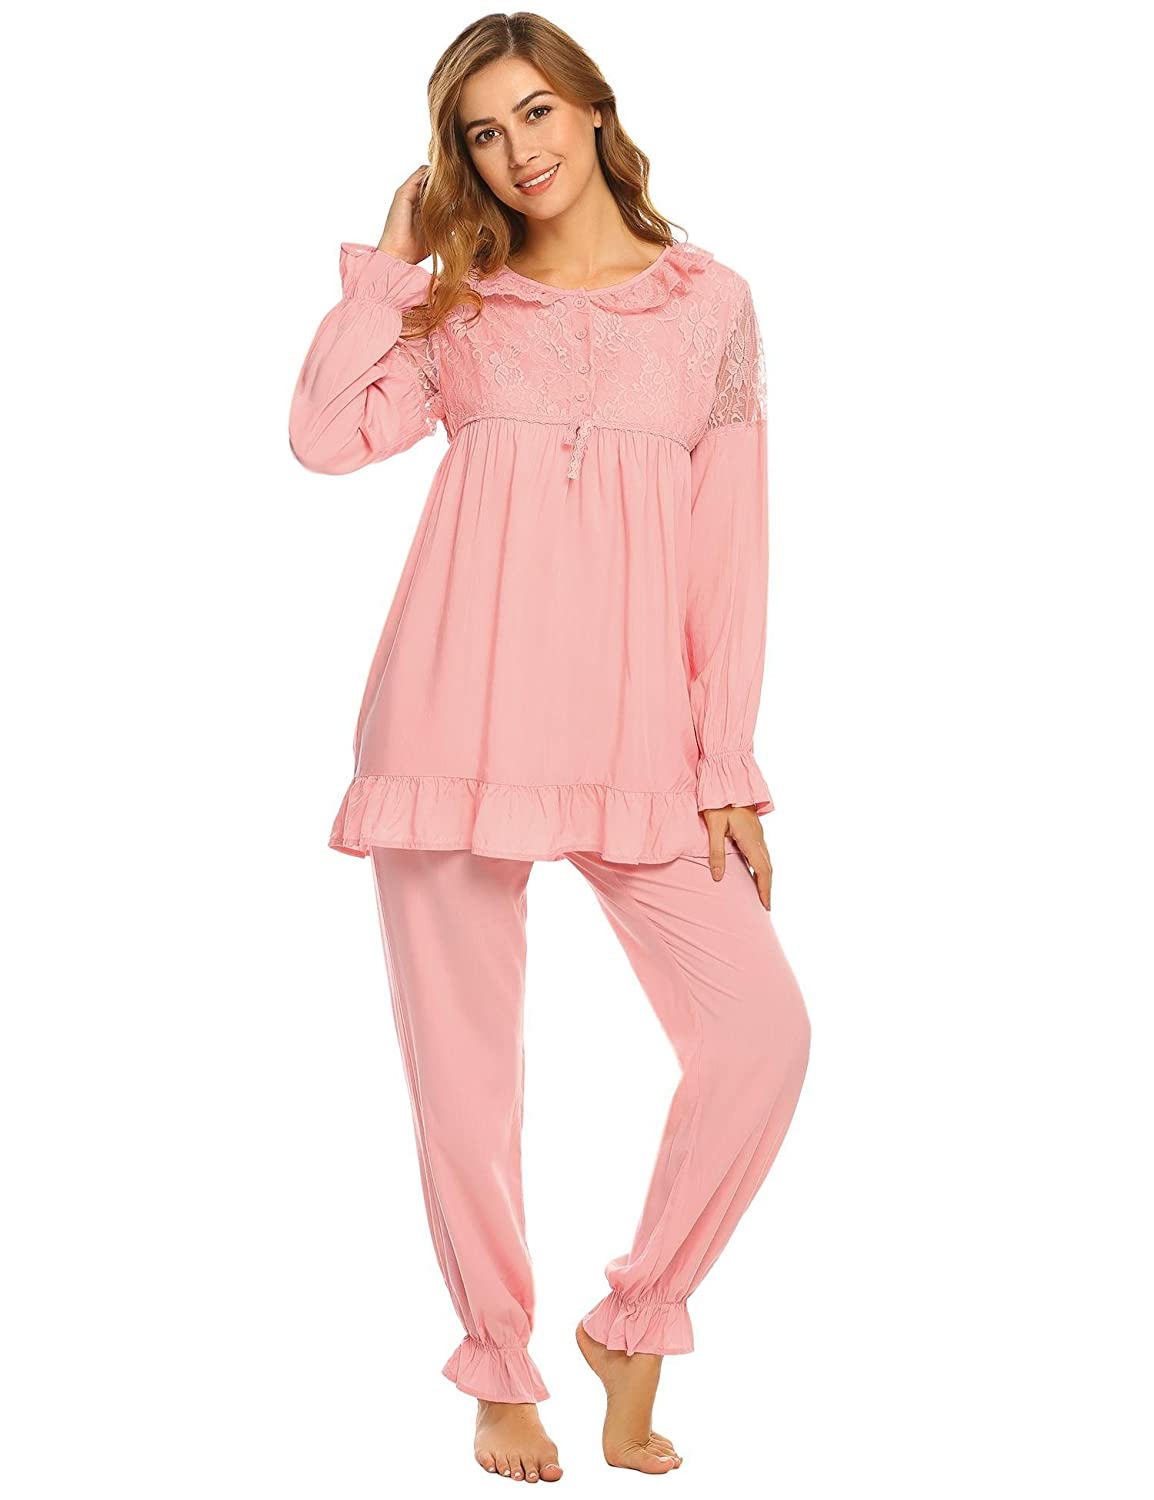 Victorian Nightgowns, Nightdress, Pajamas, Robes Goldenfox Womens Cotton Pjs Victorian Vintage Lace Patchwork Long Sleeve Pajama Set Sleepwear S-XXL $34.19 AT vintagedancer.com